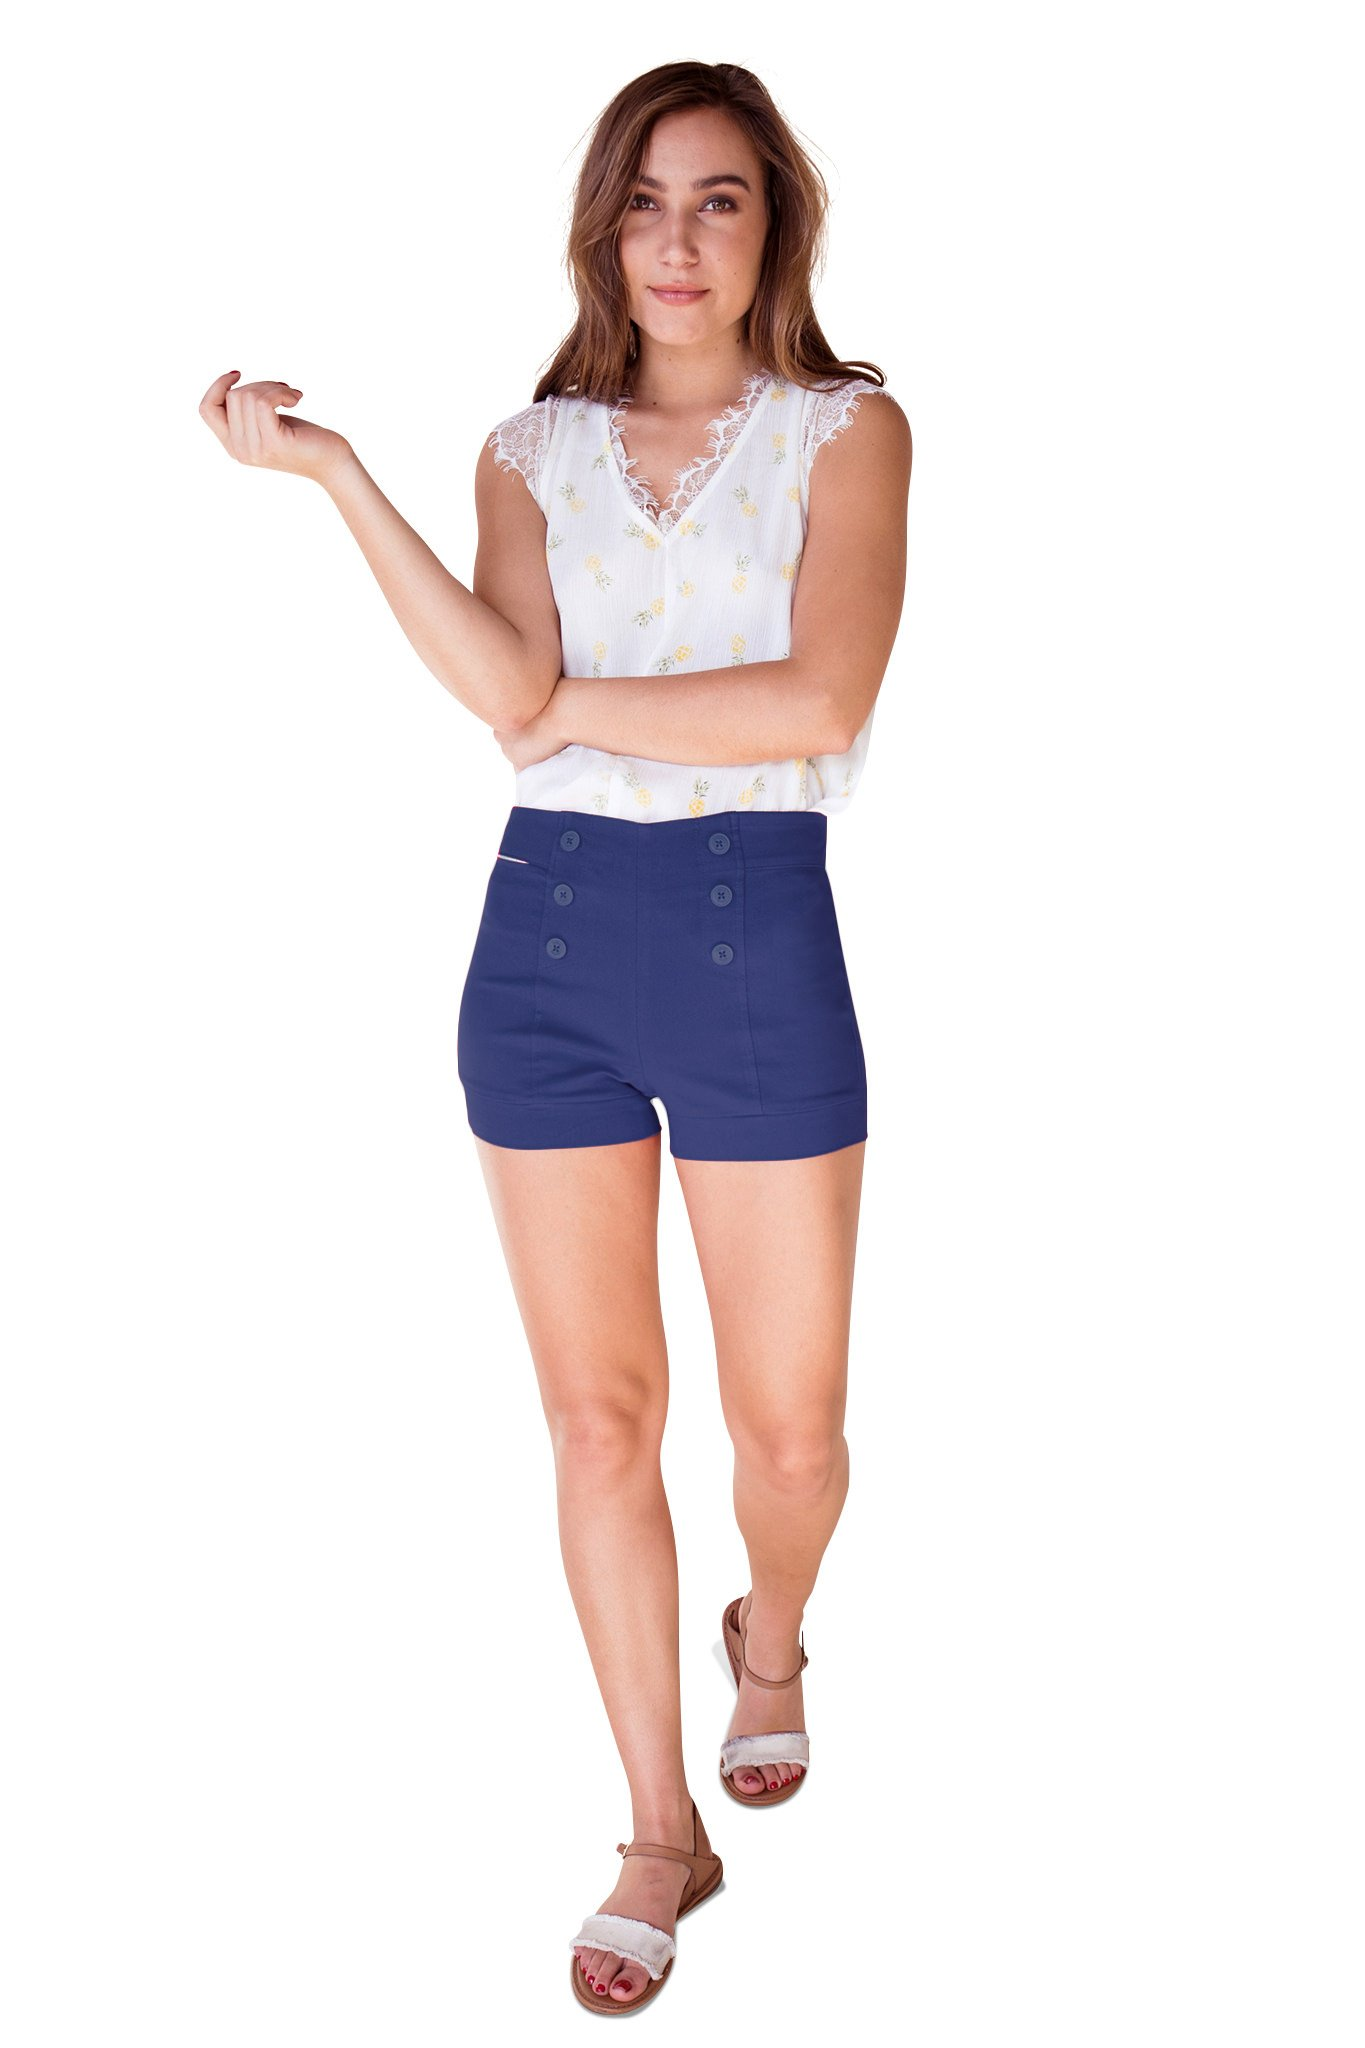 Bebop Womens Pull-On Blue Depth Size 5 Sailor Shorts High Waist Front Buttons by Be Bop